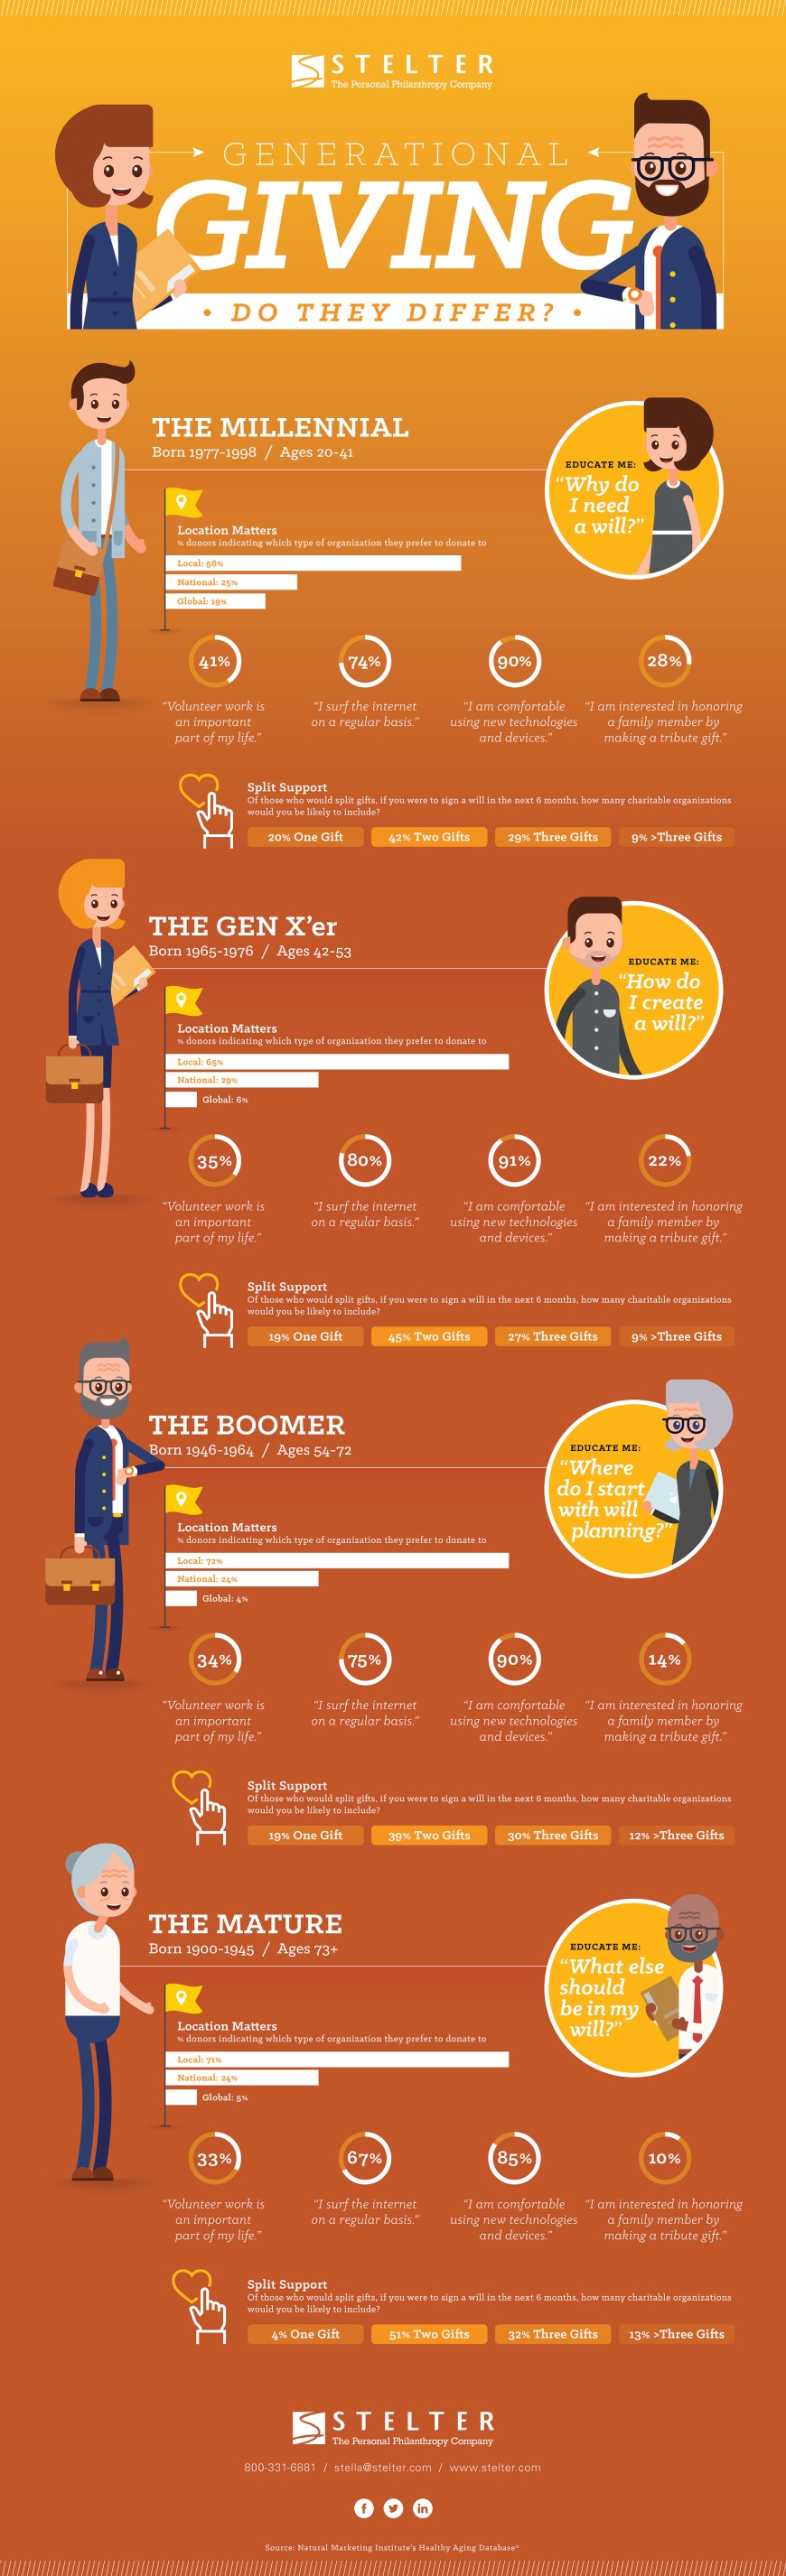 Infographic: Generational Giving